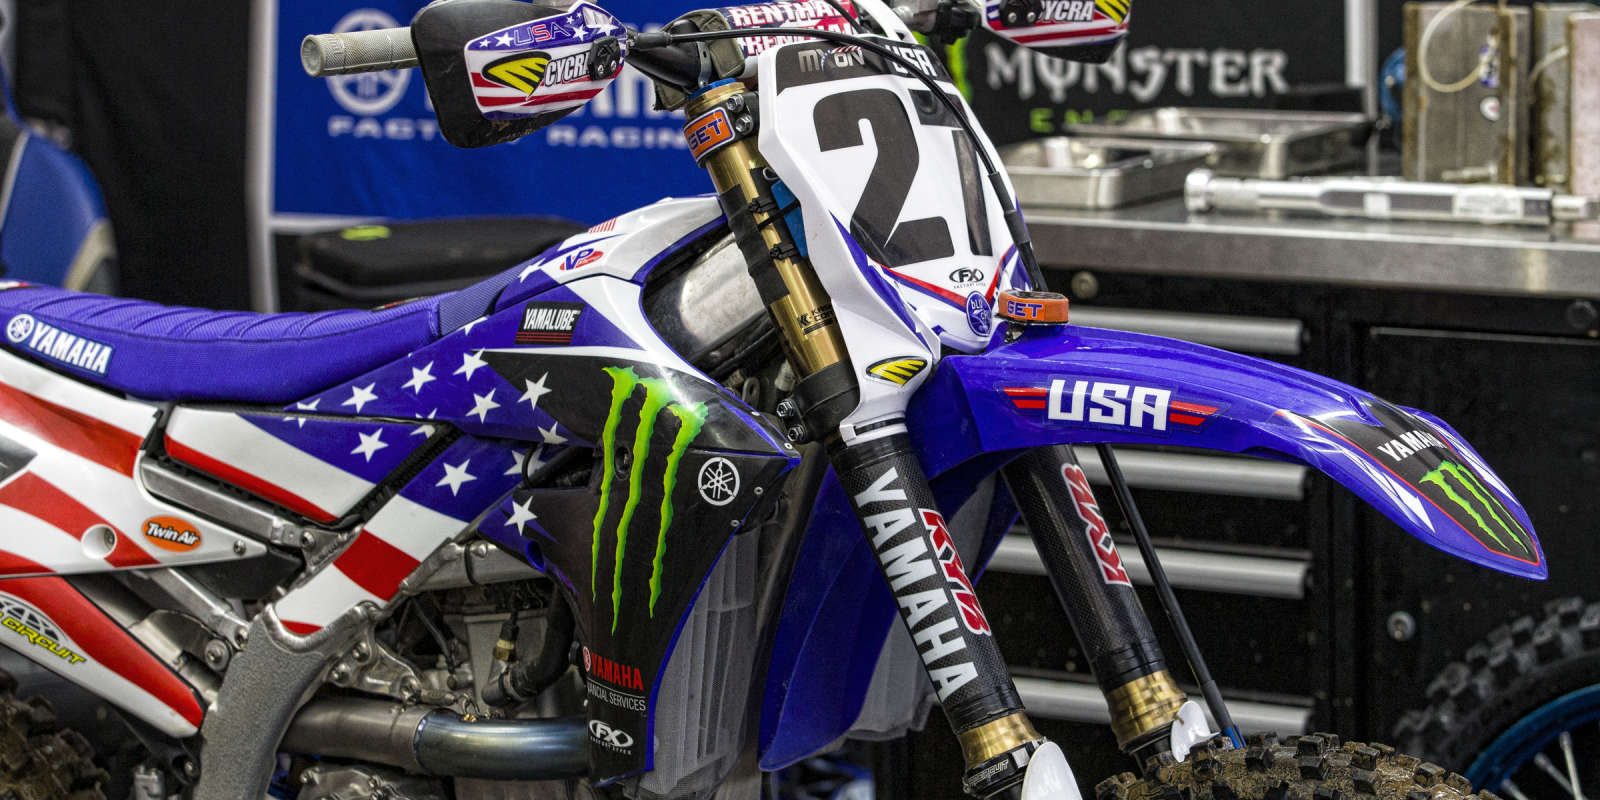 Justin Barcia at the 2018 Motocross of Nations